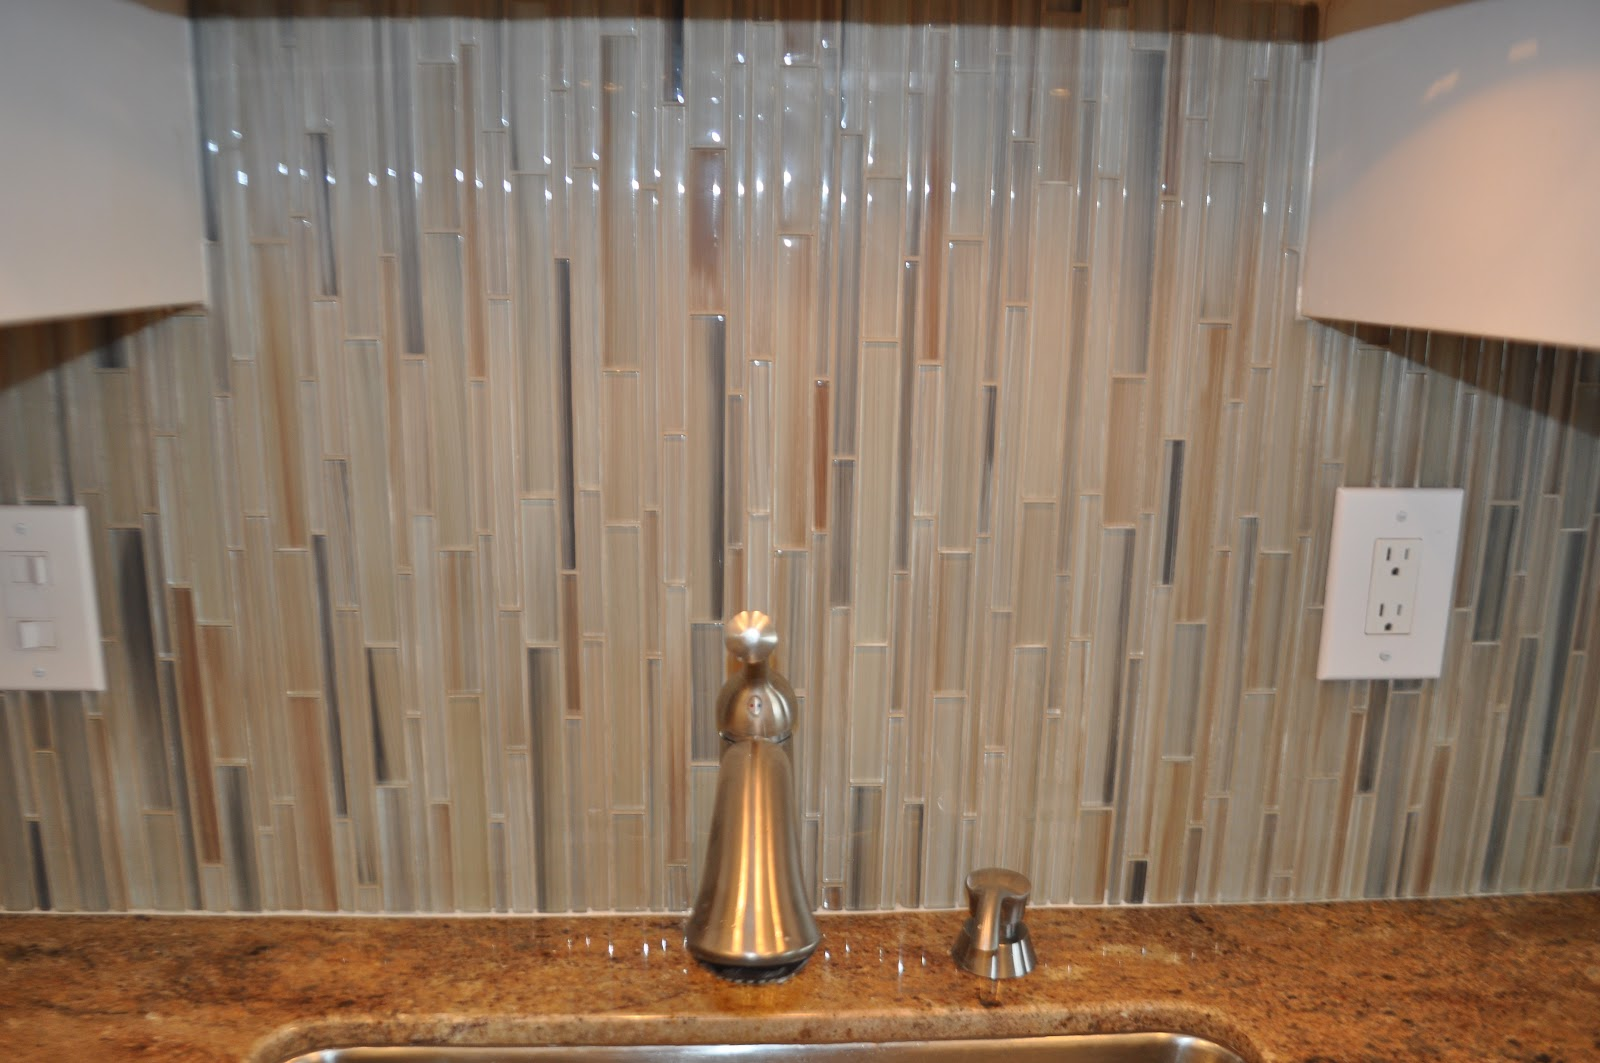 North Kihei Glass Tile Backsplash Higher Standard Tile and Stone